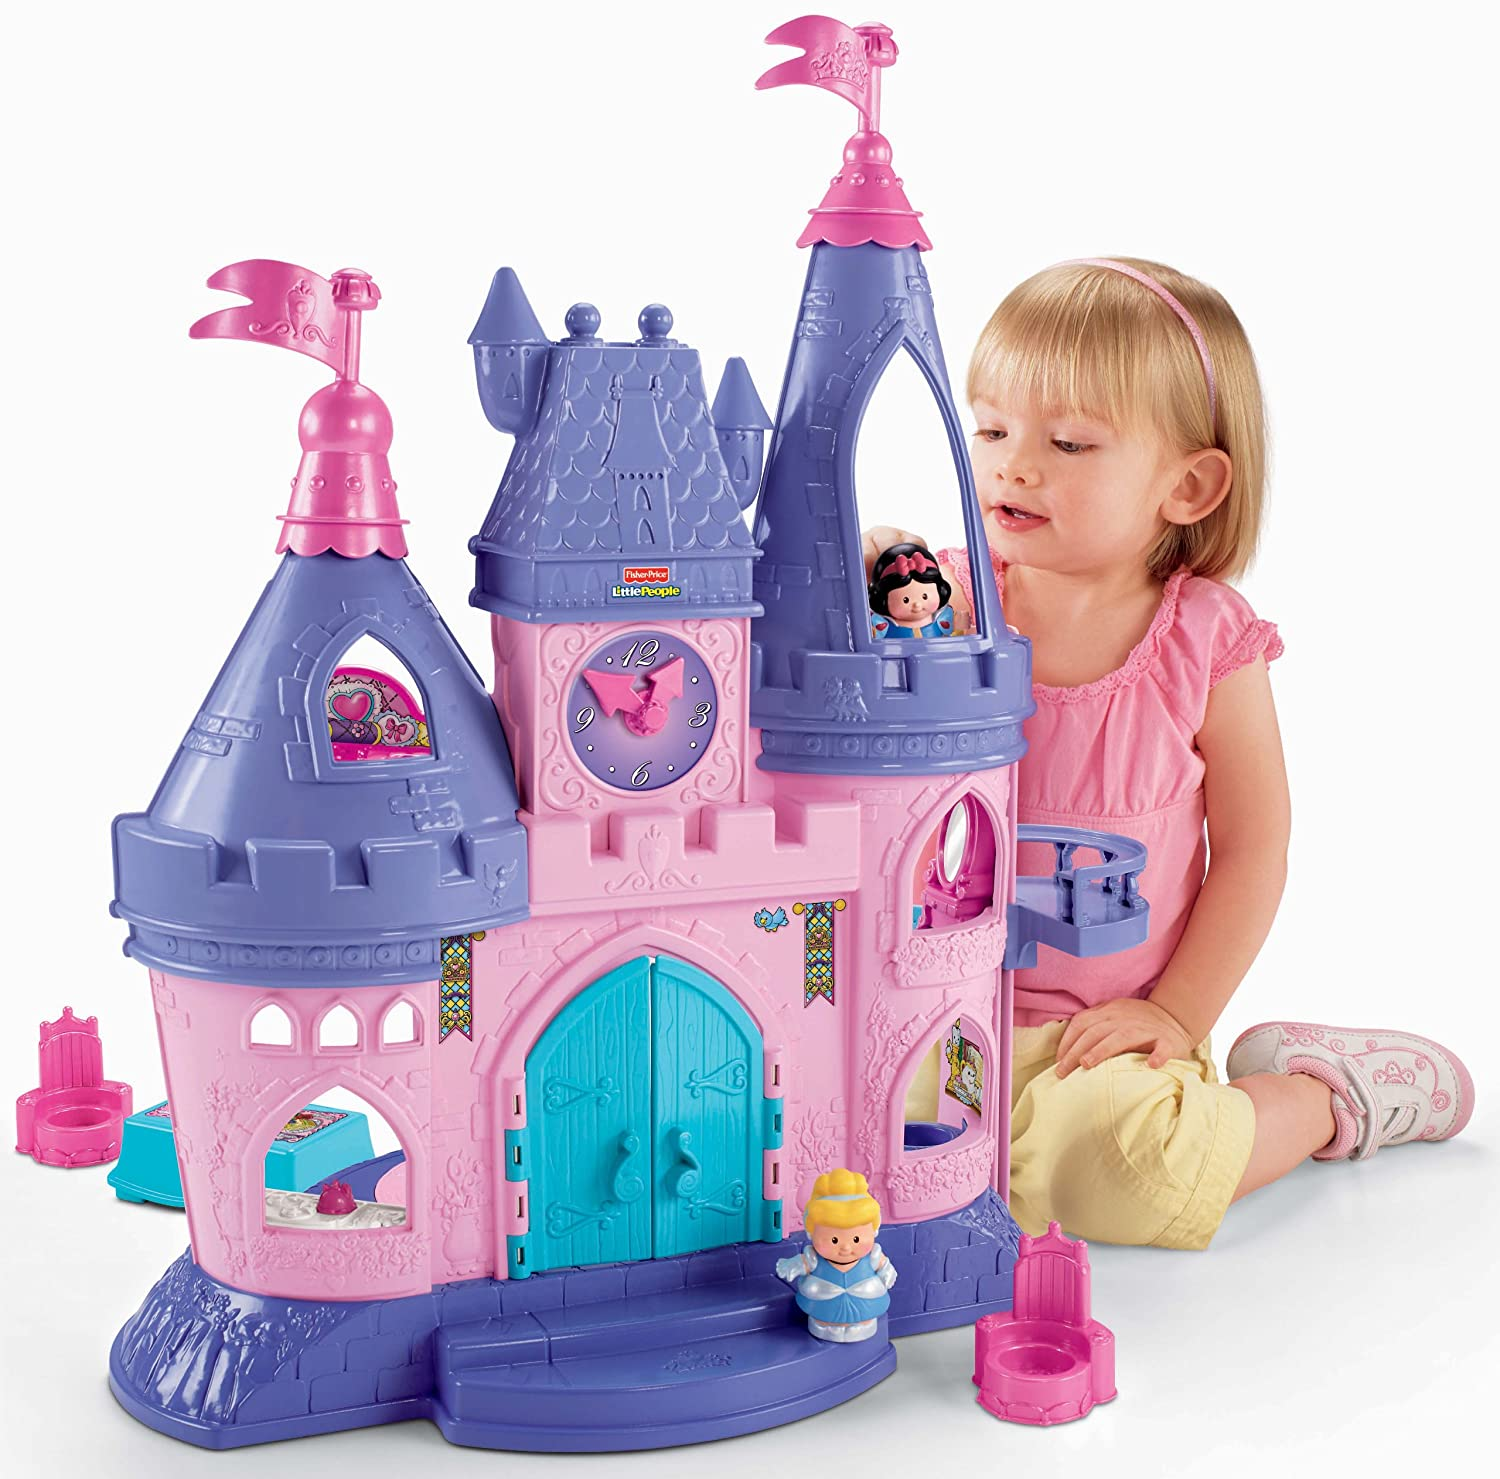 Amazon.com: Fisher-Price Little People Disney Princess, Songs Palace ...